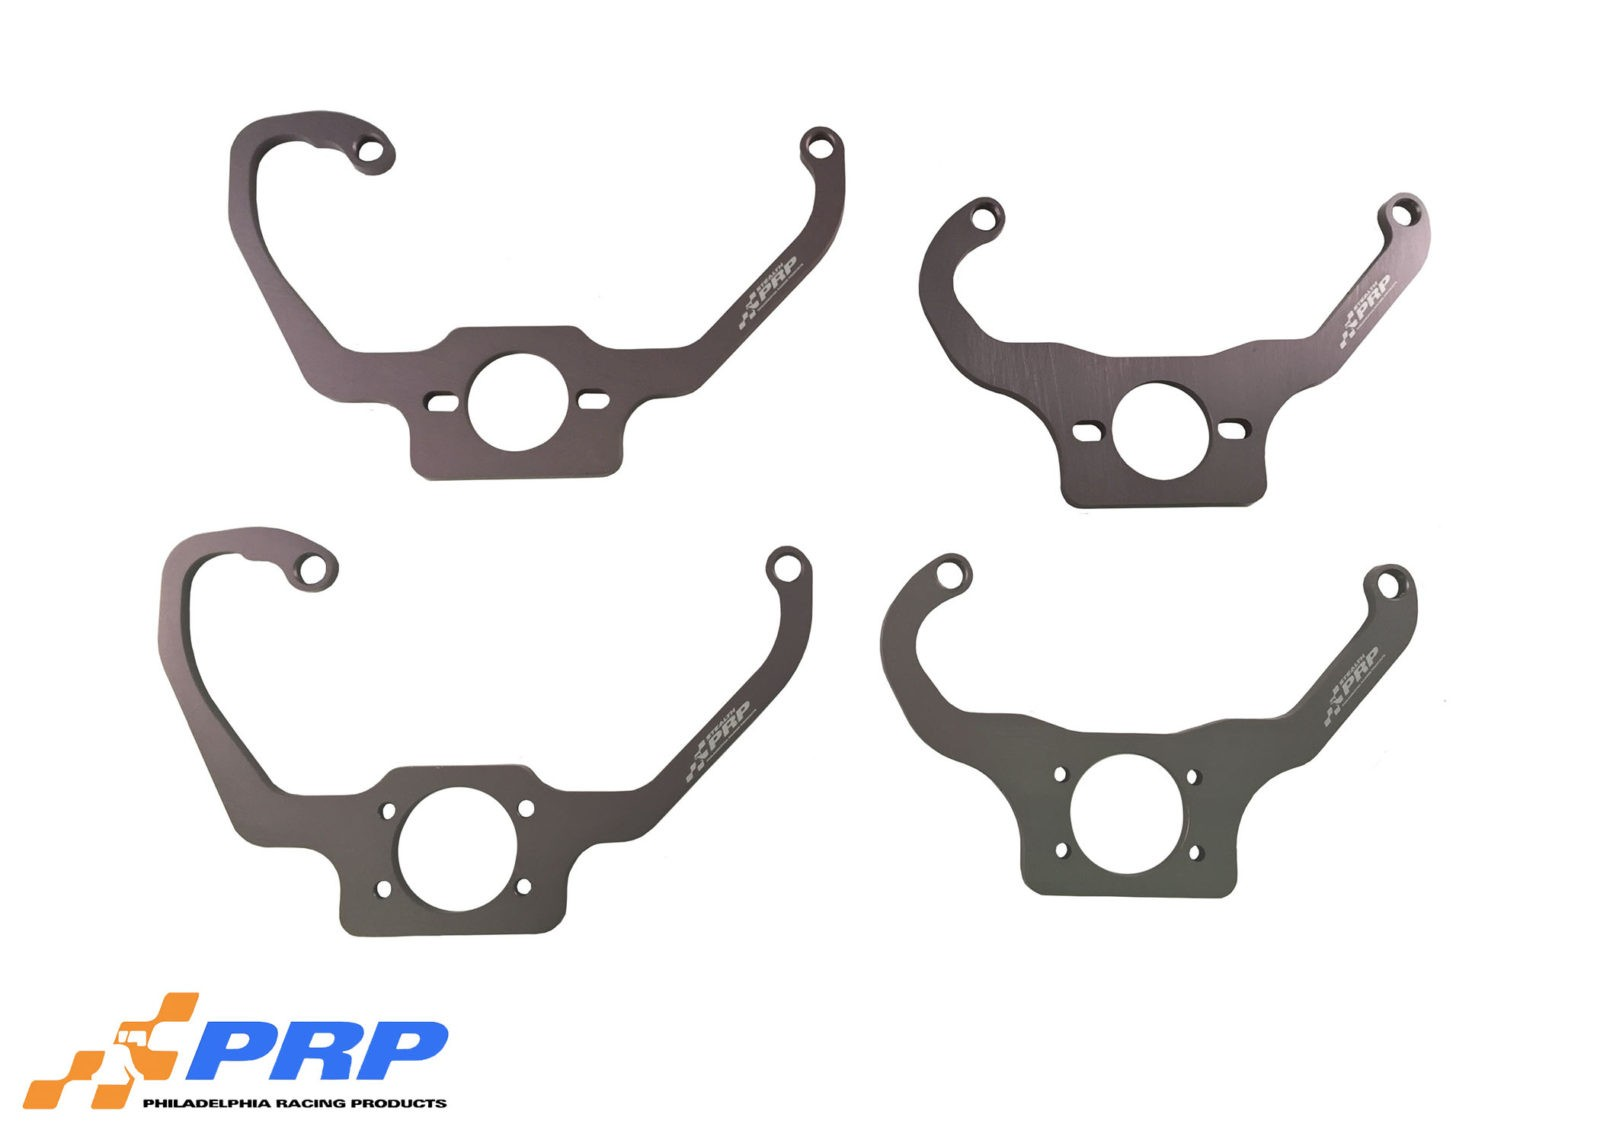 Stealth Regulator Brackets made by PRP Racing Products